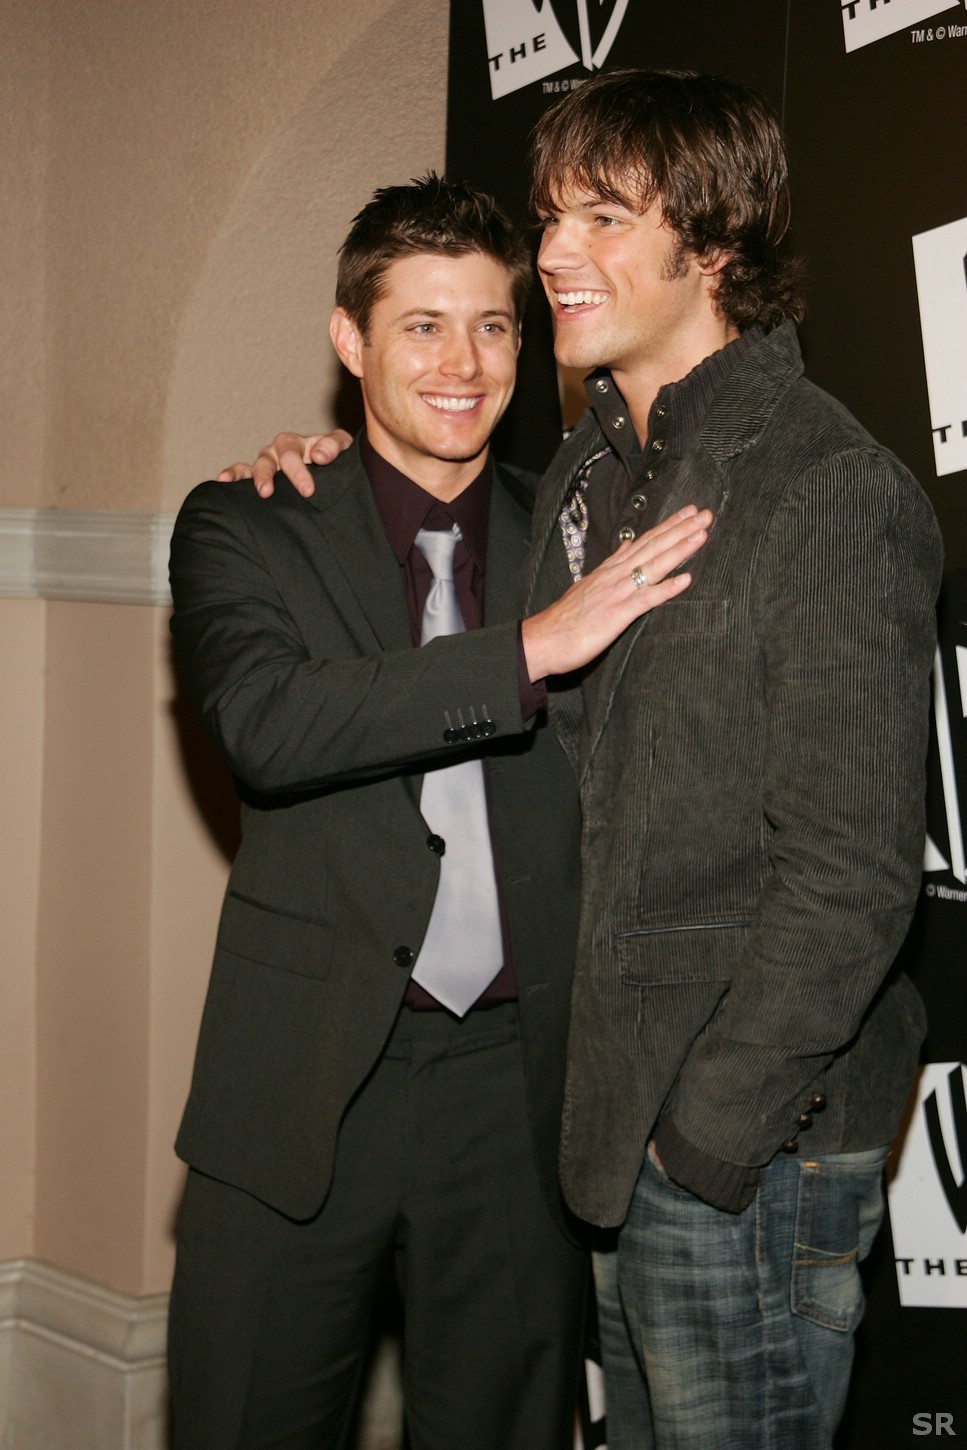 Alfa img - Showing > Jensen Ackles Hugs